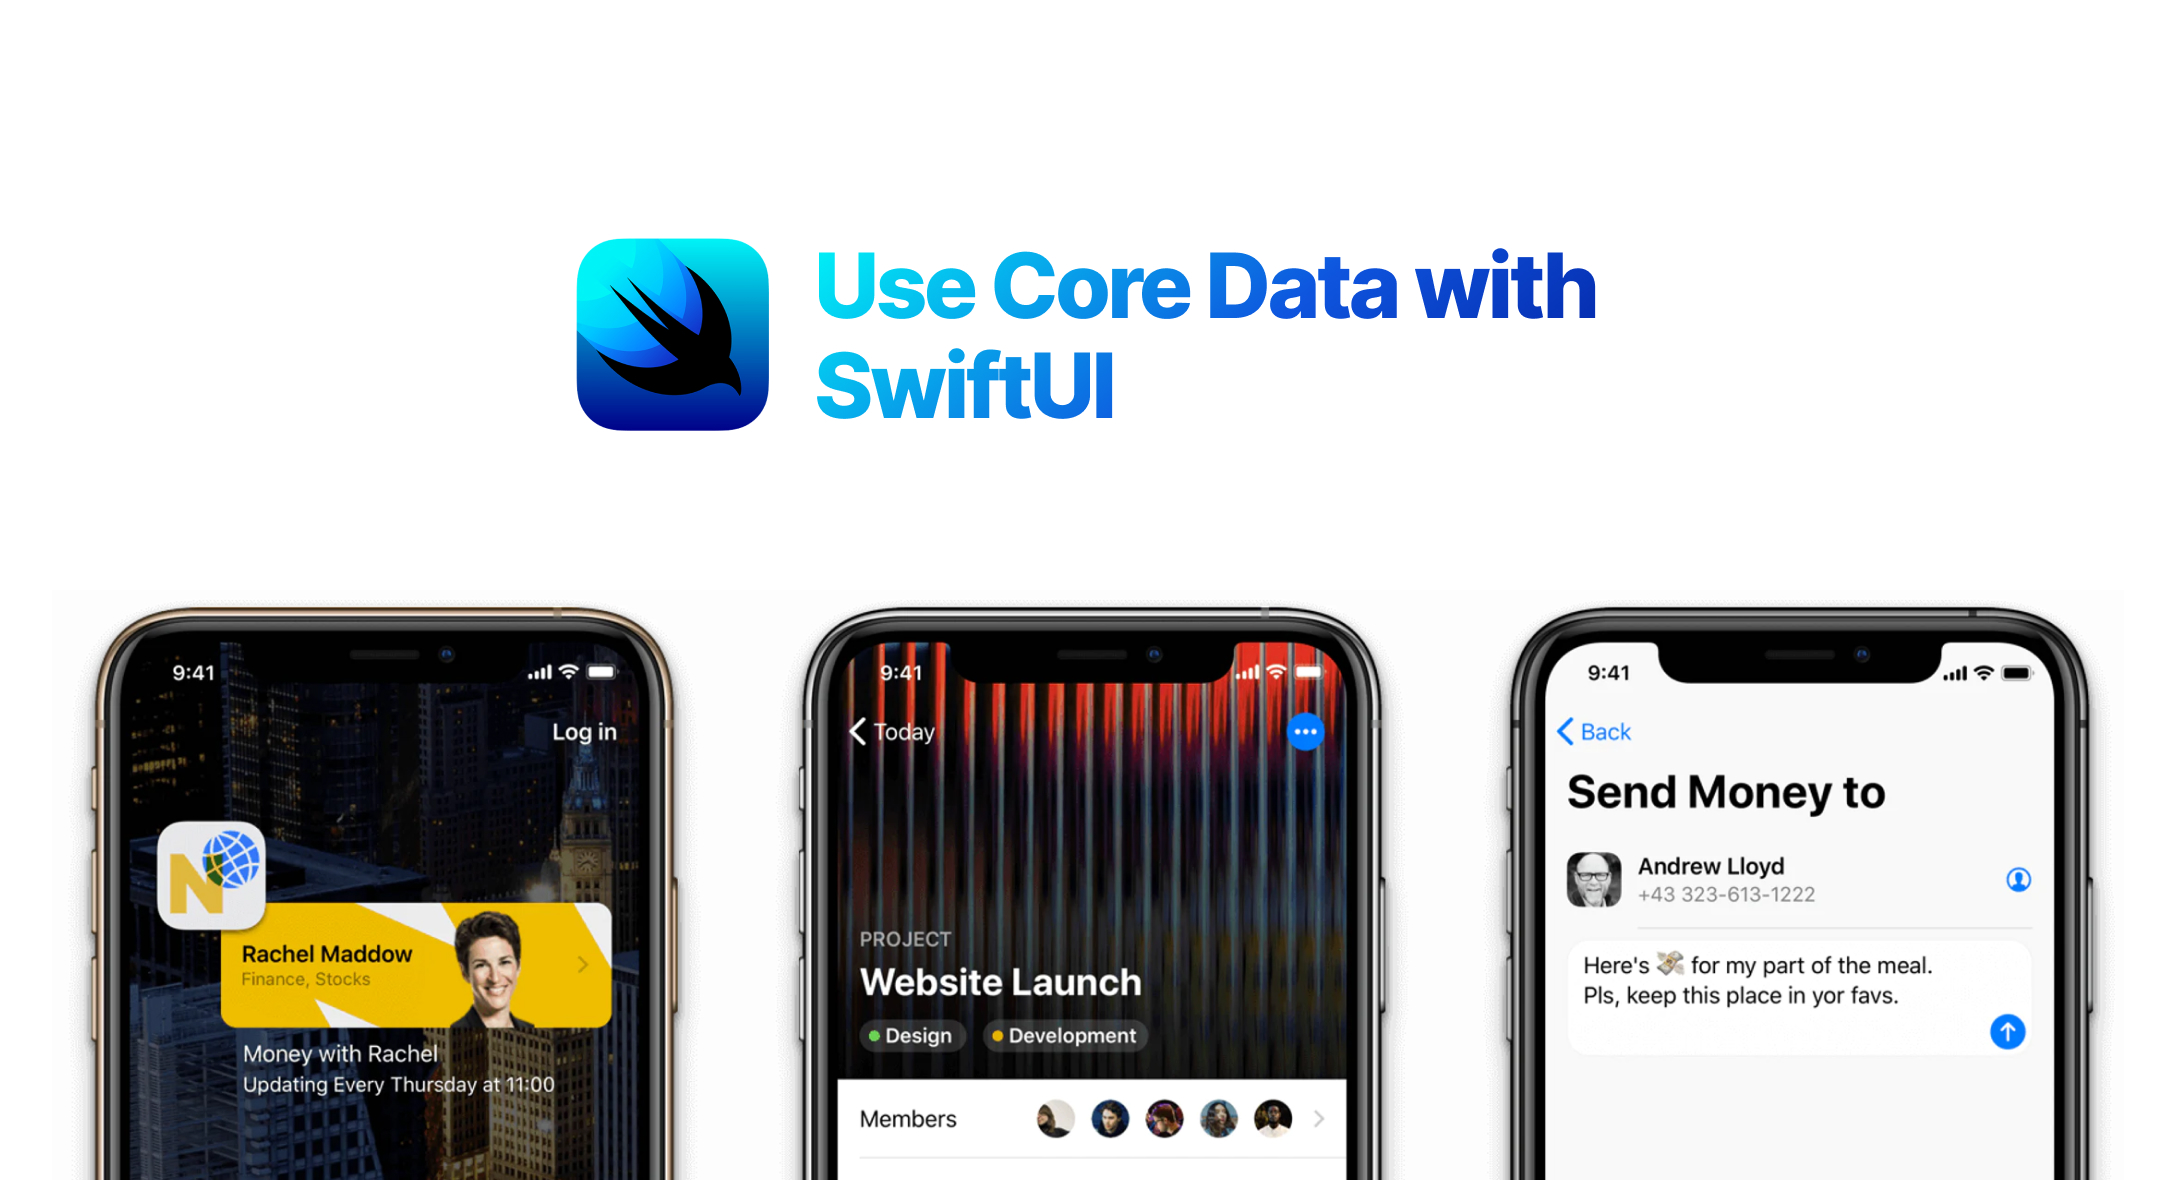 Use Core Data with SwiftUI